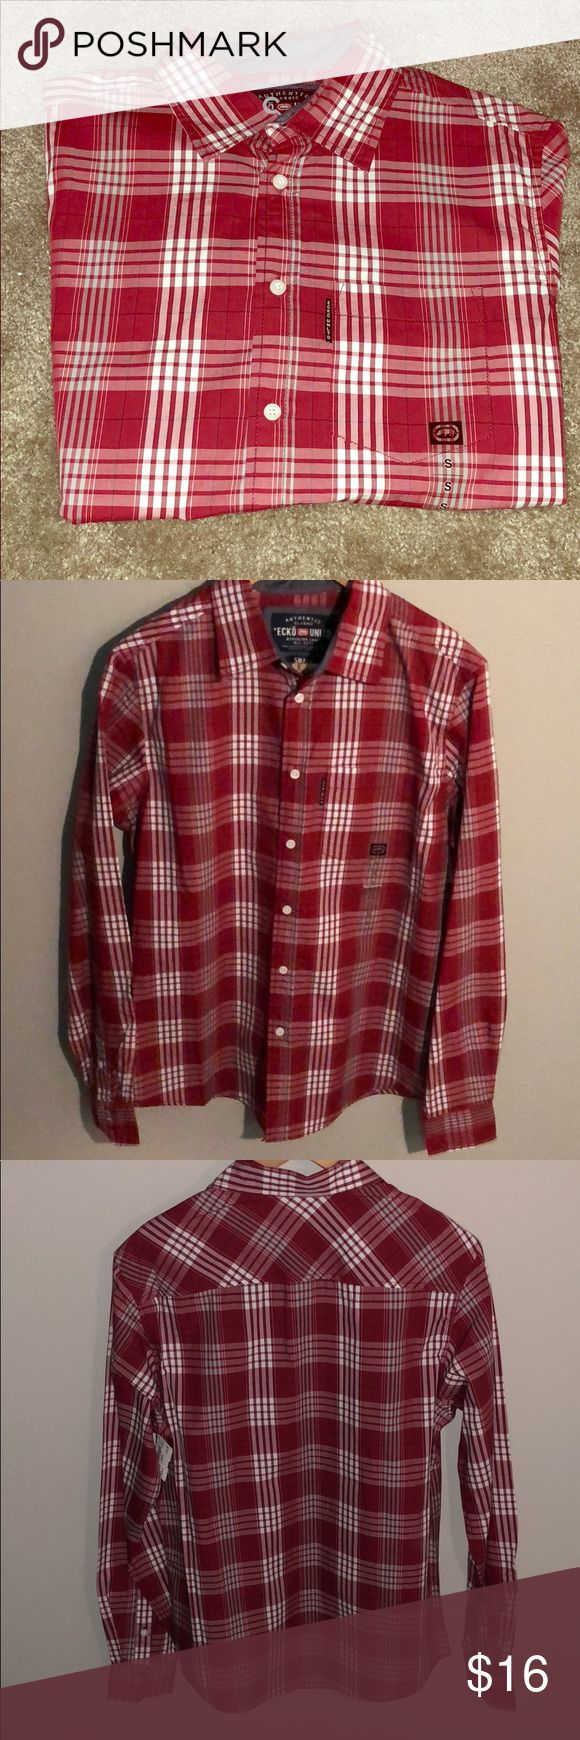 Ecko Unltd Crimson Red Plaid Shirt -Brand New w/ tag -Never worn -Size Small -100% Cotton -Has chest pocket Ecko Unlimited Shirts Casual Button Down Shirts